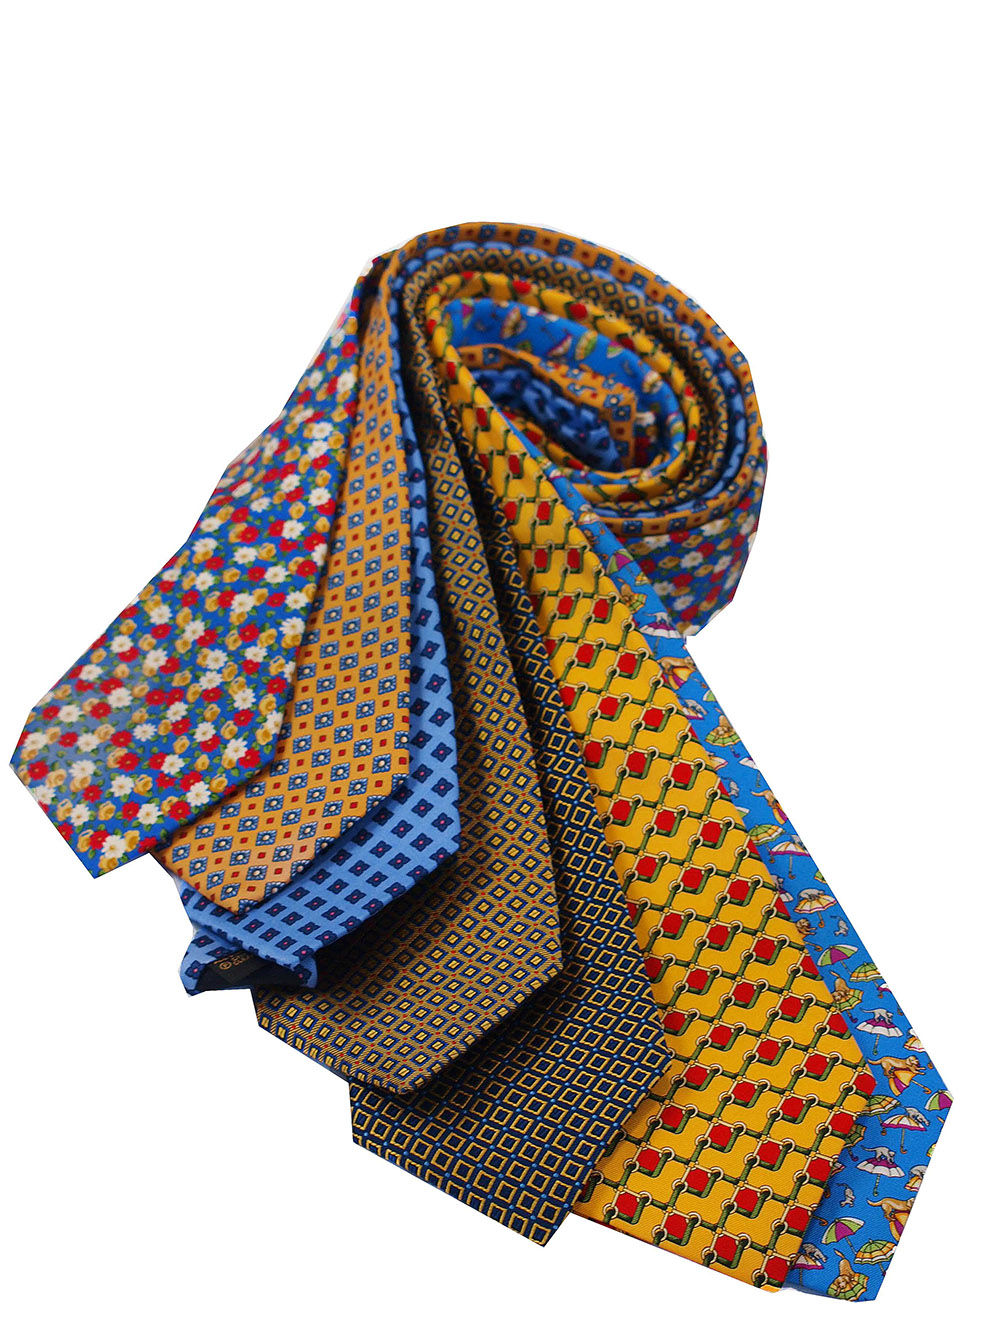 Cavenagh of London 7Piece 100% Pure Silk Ties Made in UK (253D)RRP£139.99